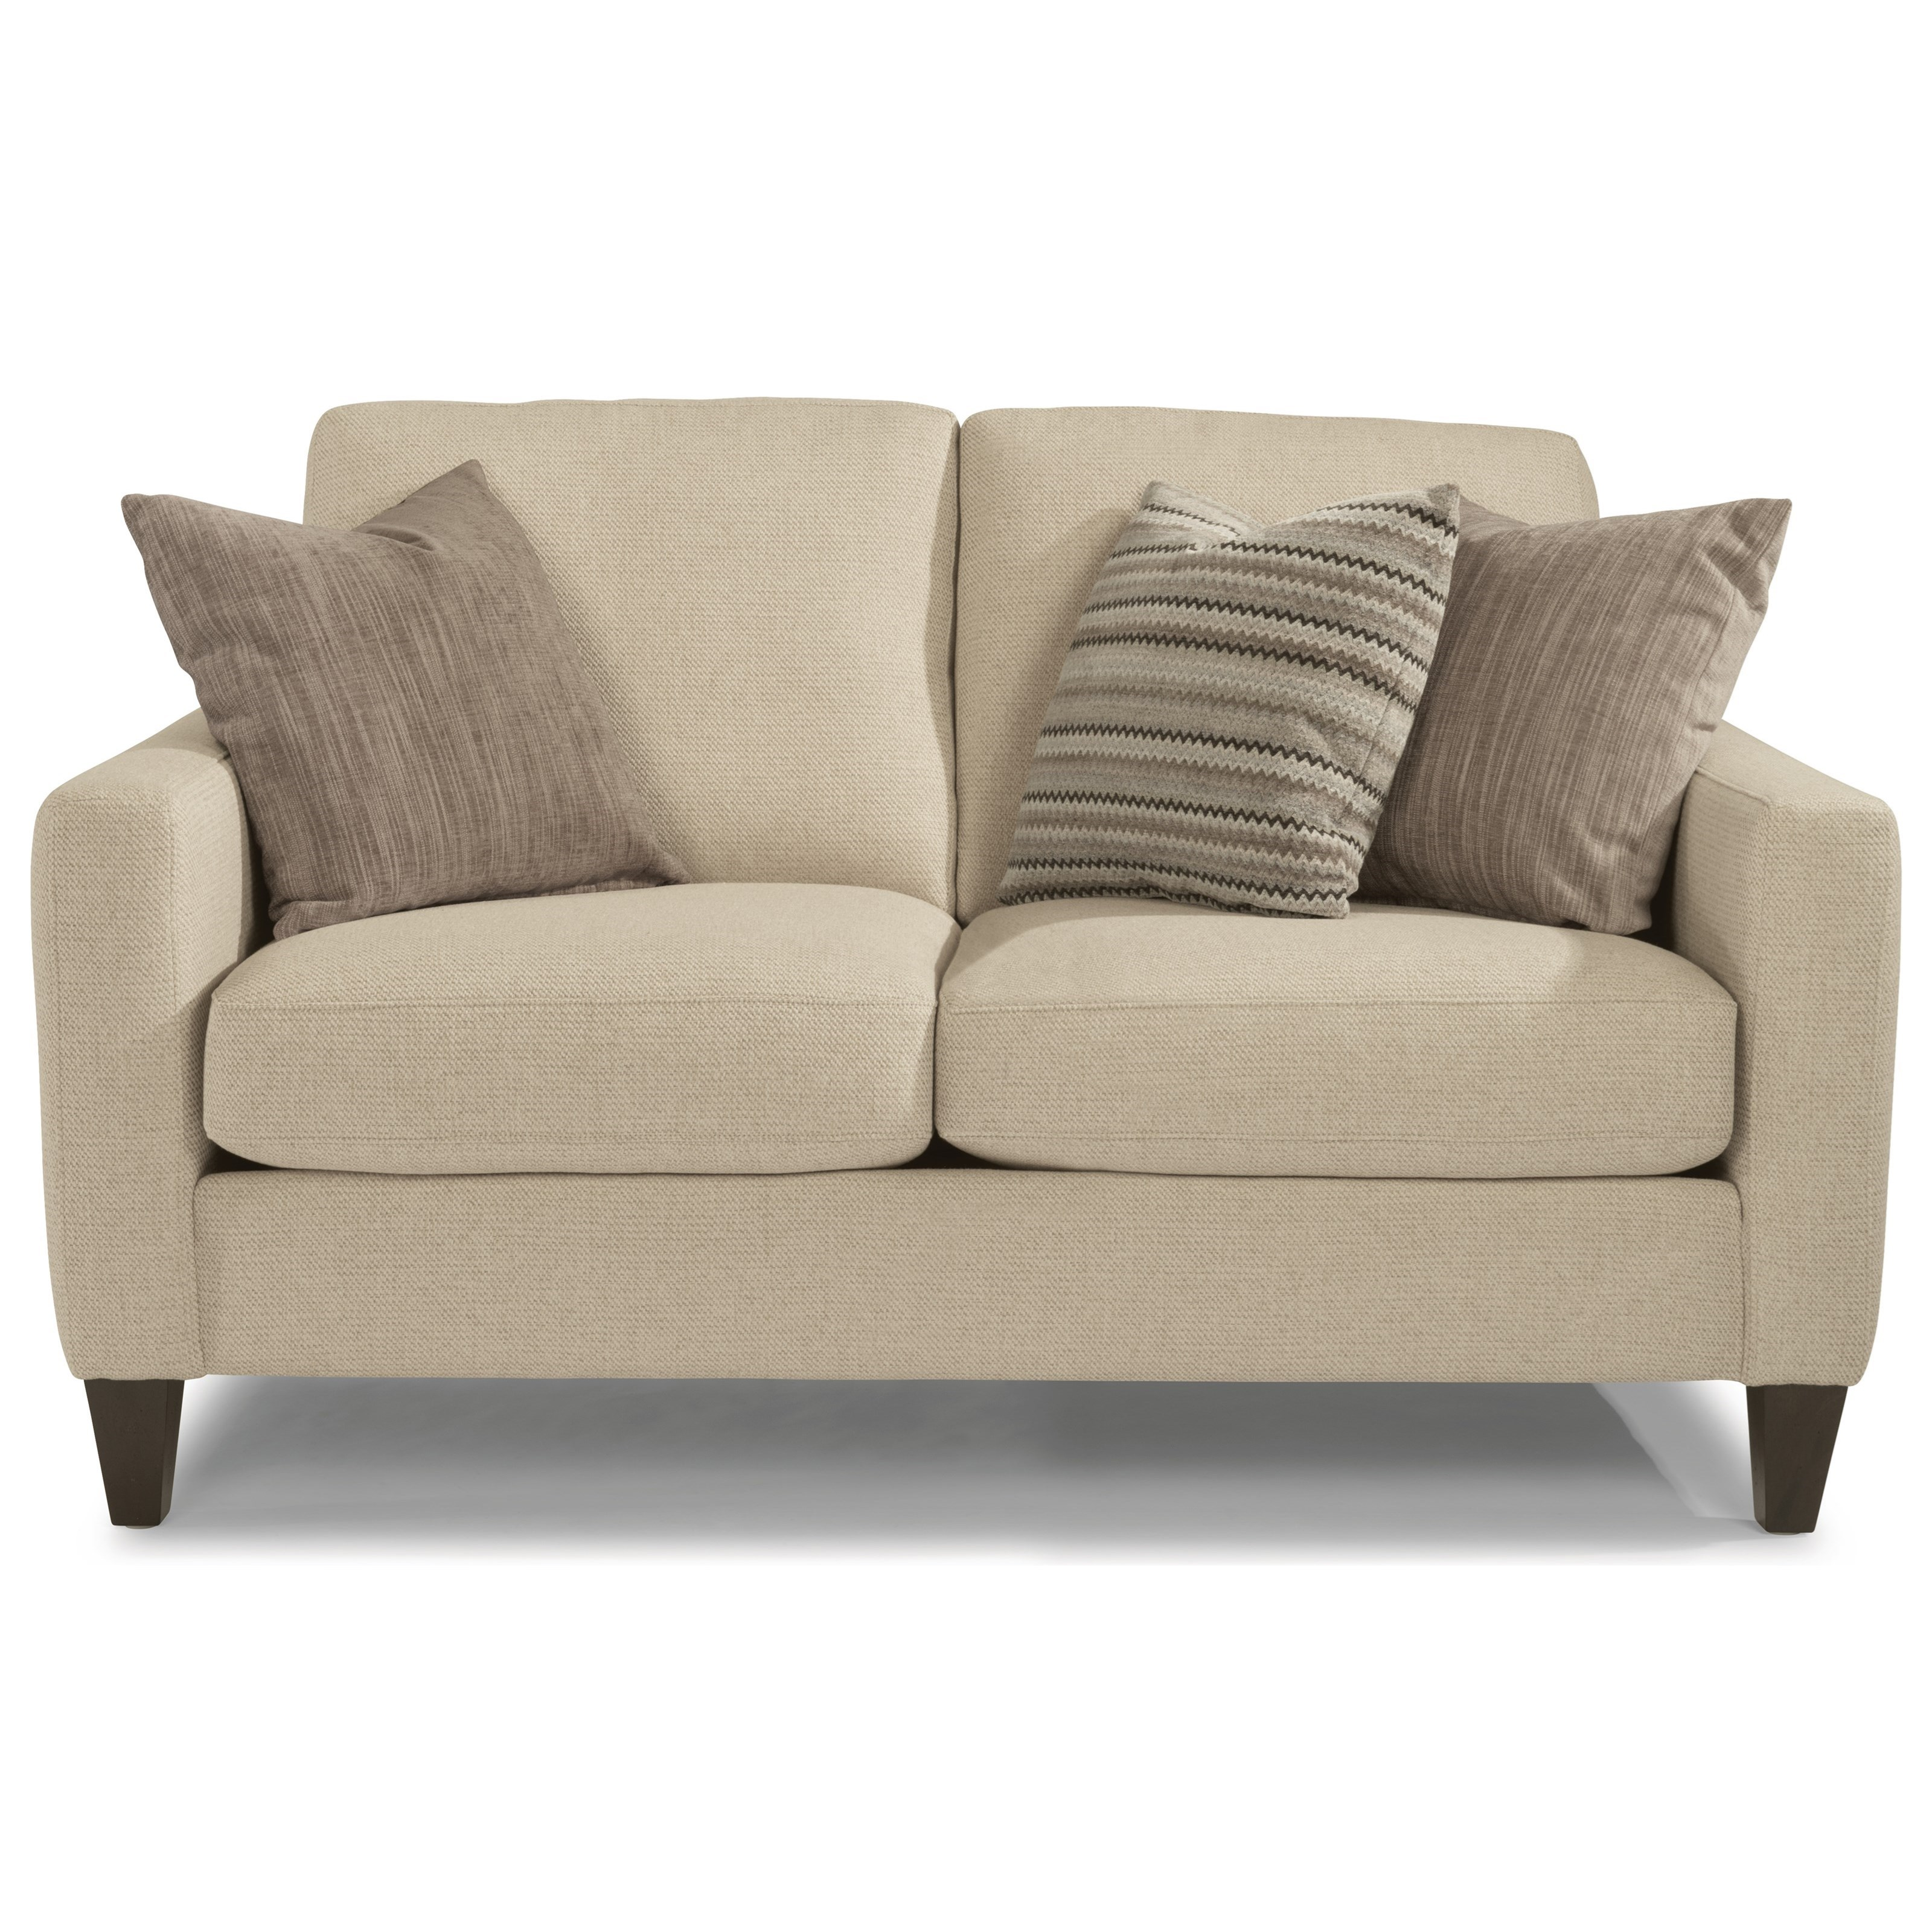 River Contemporary Loveseat with Track Arms by Flexsteel at Crowley  Furniture & Mattress